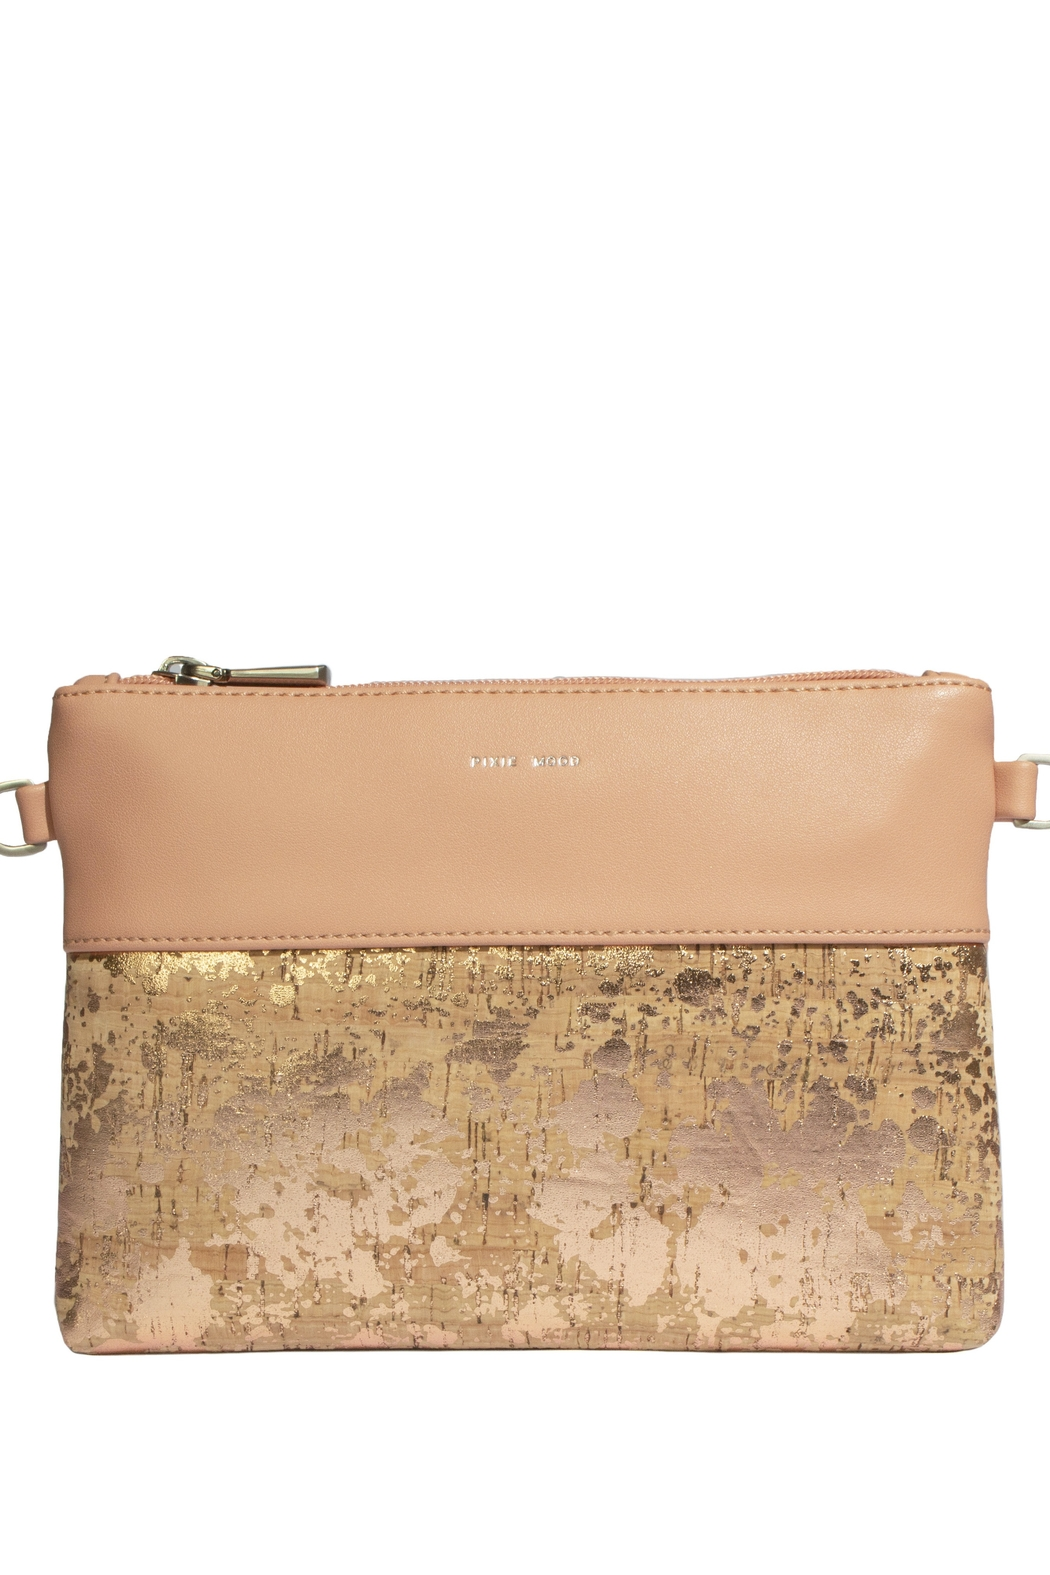 Pixie Mood Nicole Pouch Small - Front Cropped Image